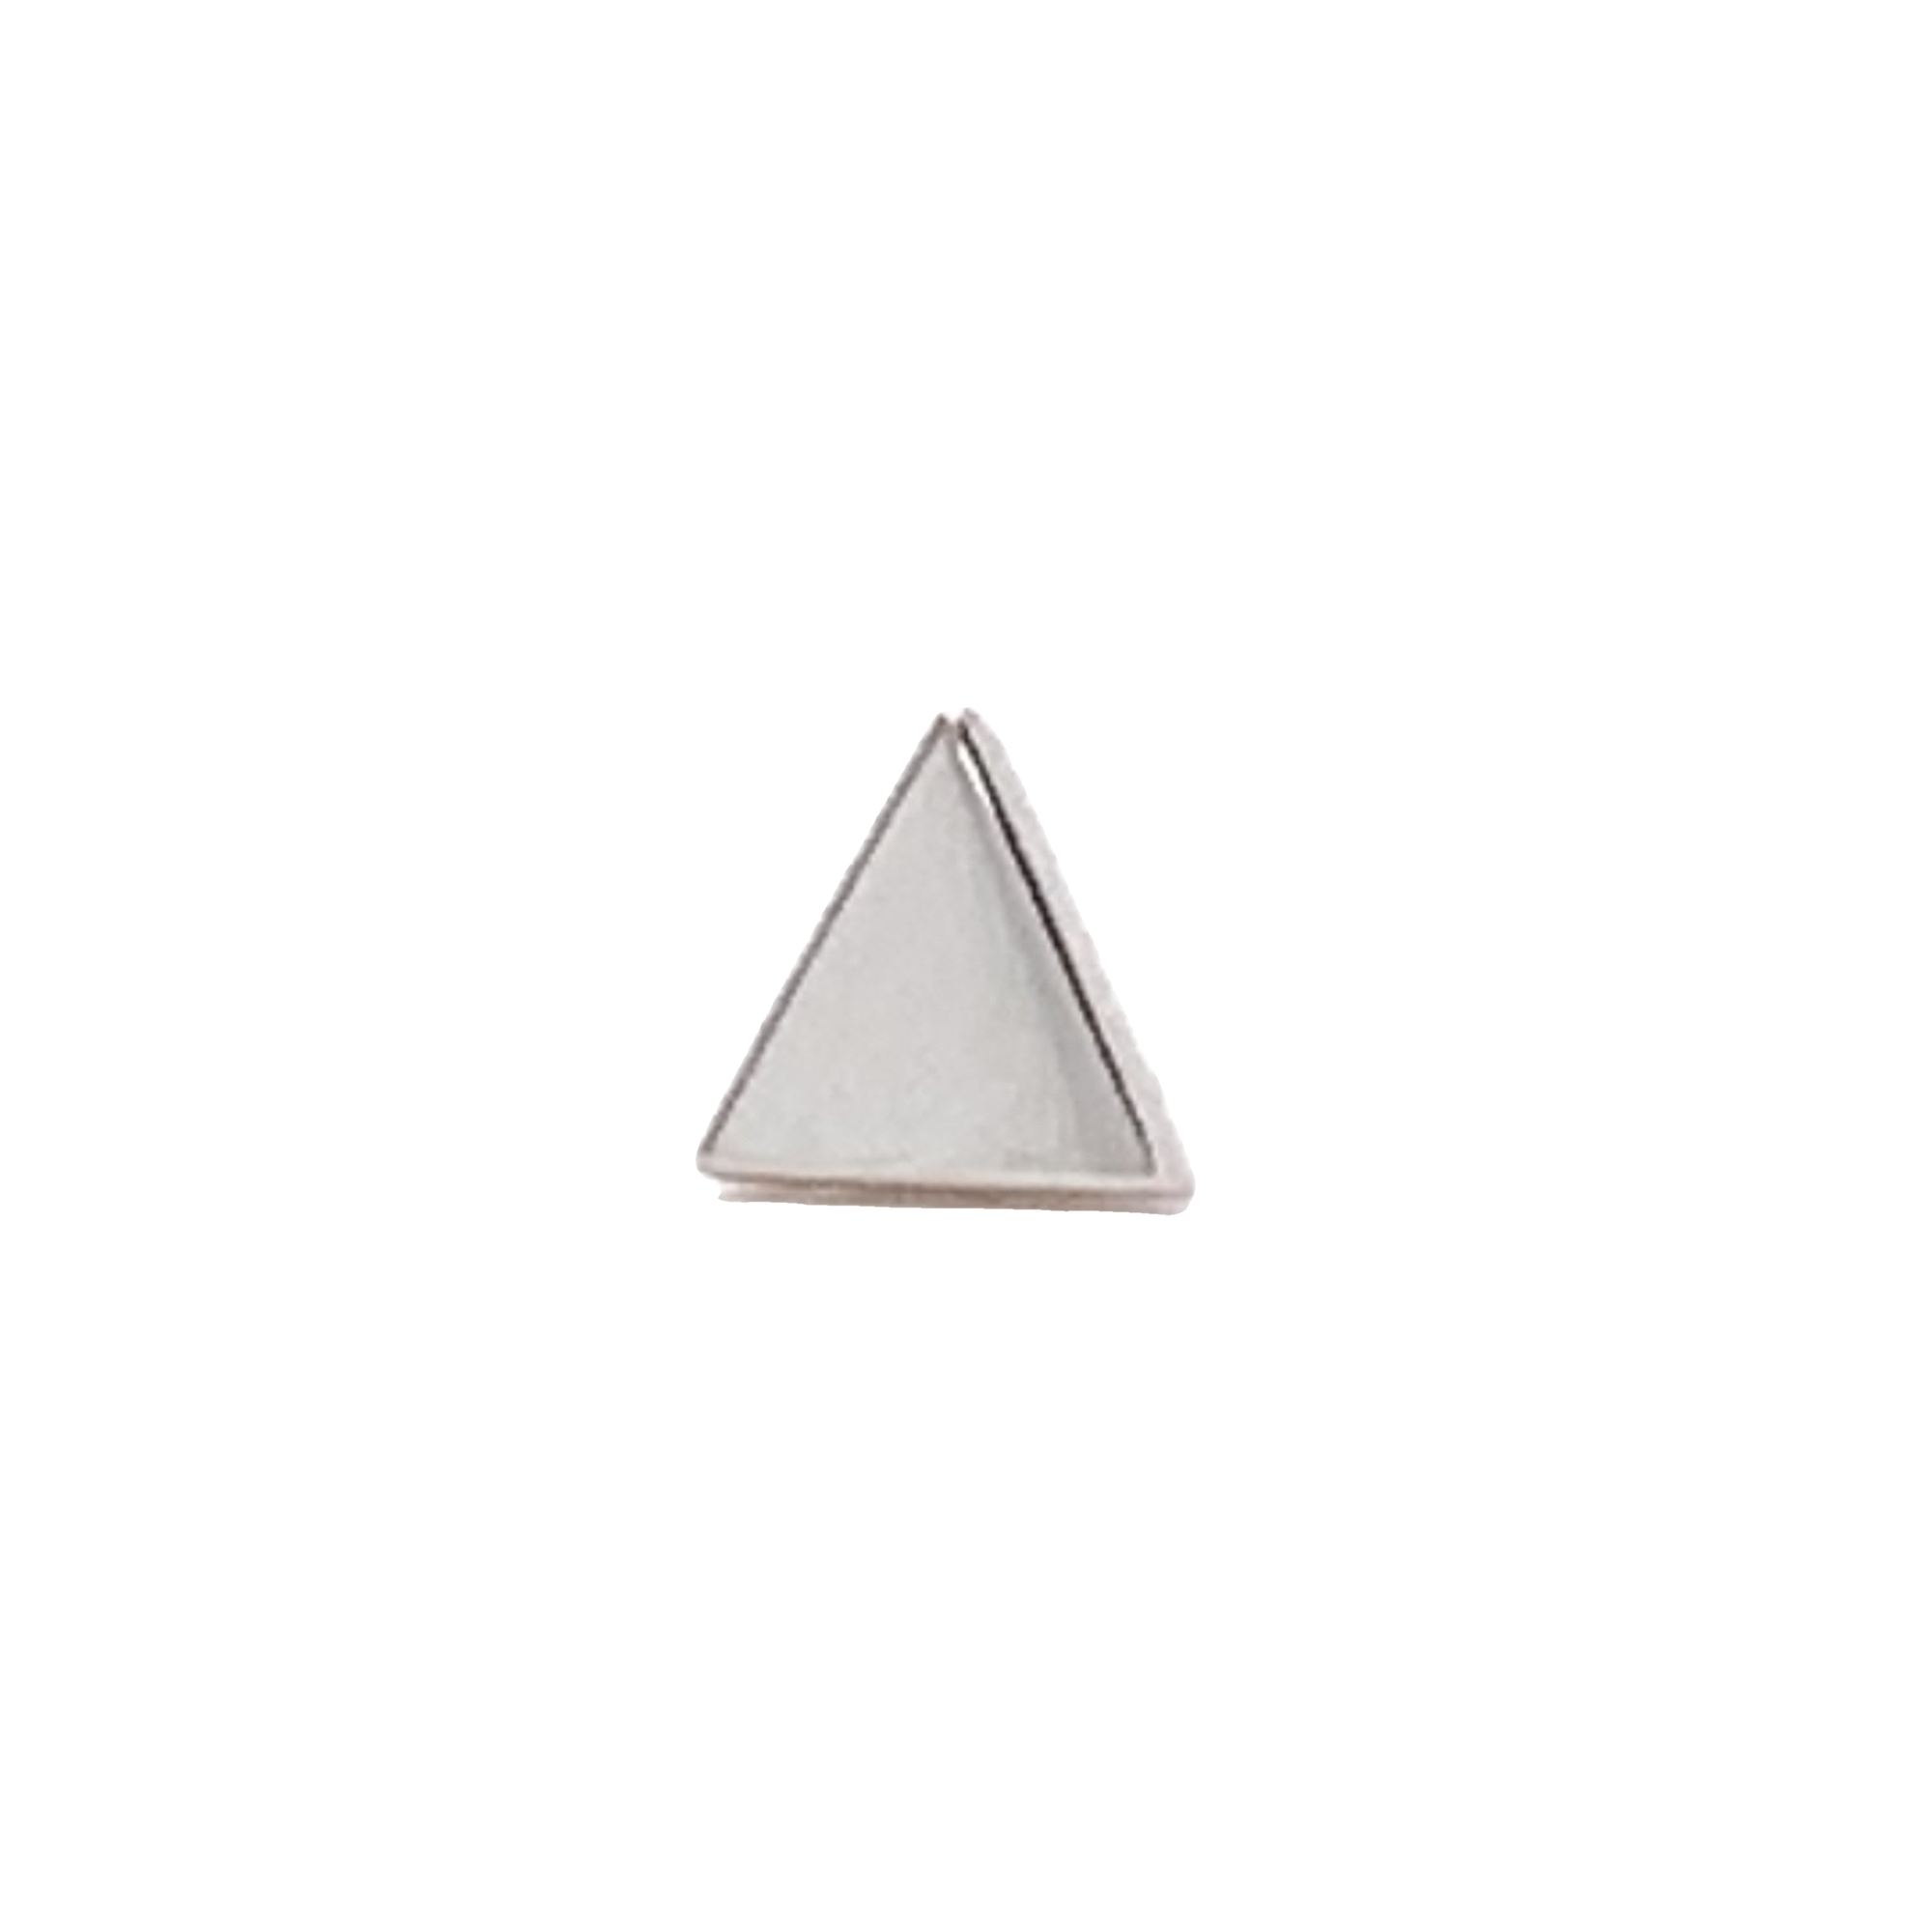 14Ct White Gold Triangle End Attachment